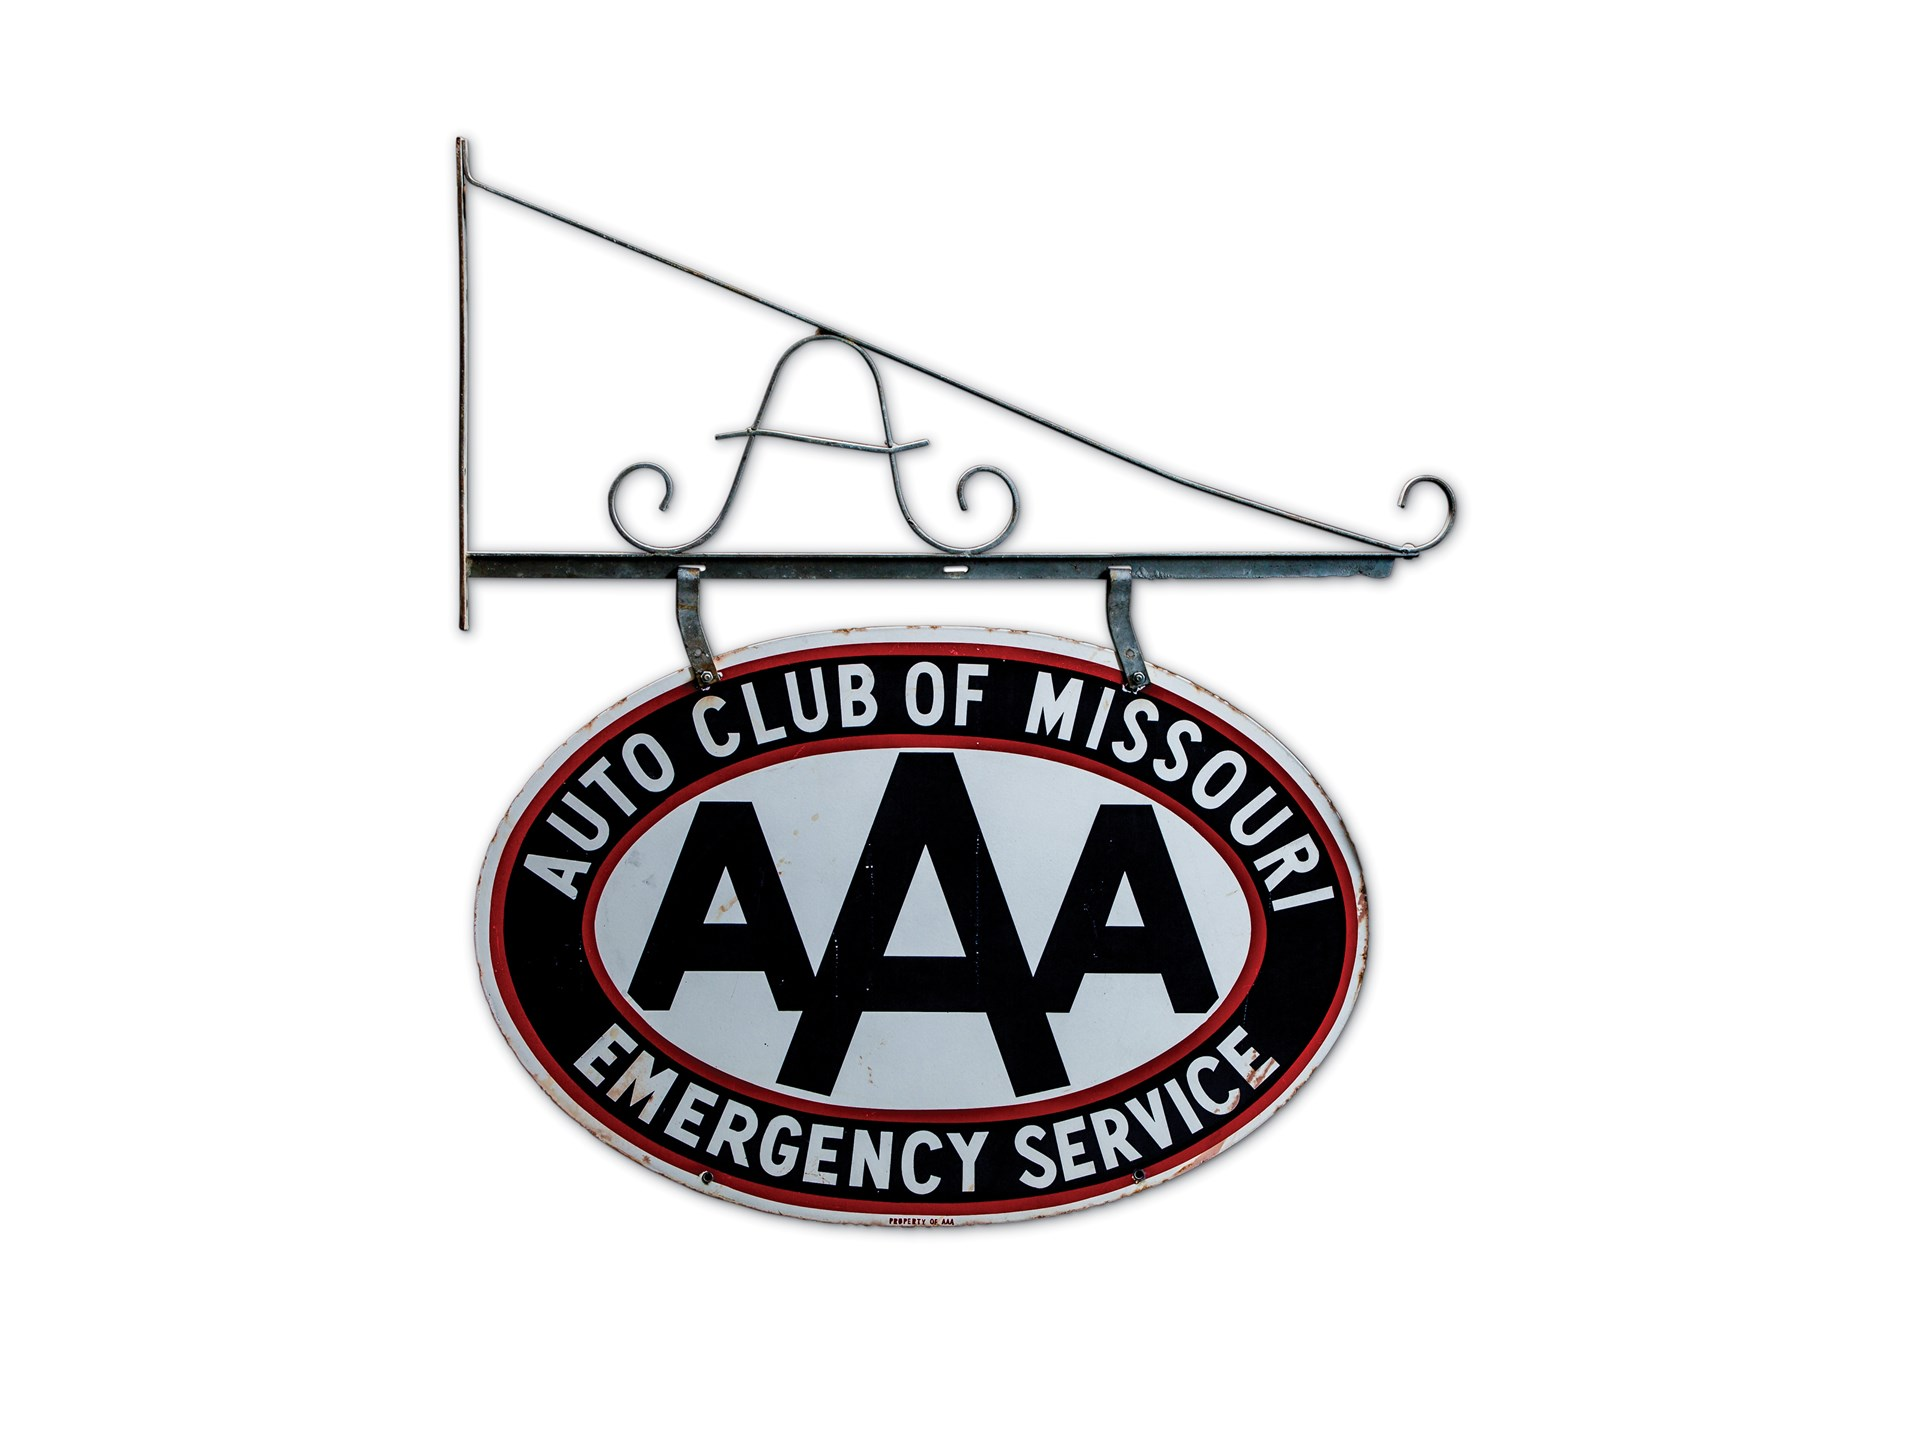 Aaa Auto Club Near Me >> Rm Sotheby S Aaa Auto Club Of Missouri Emergency Service Sign